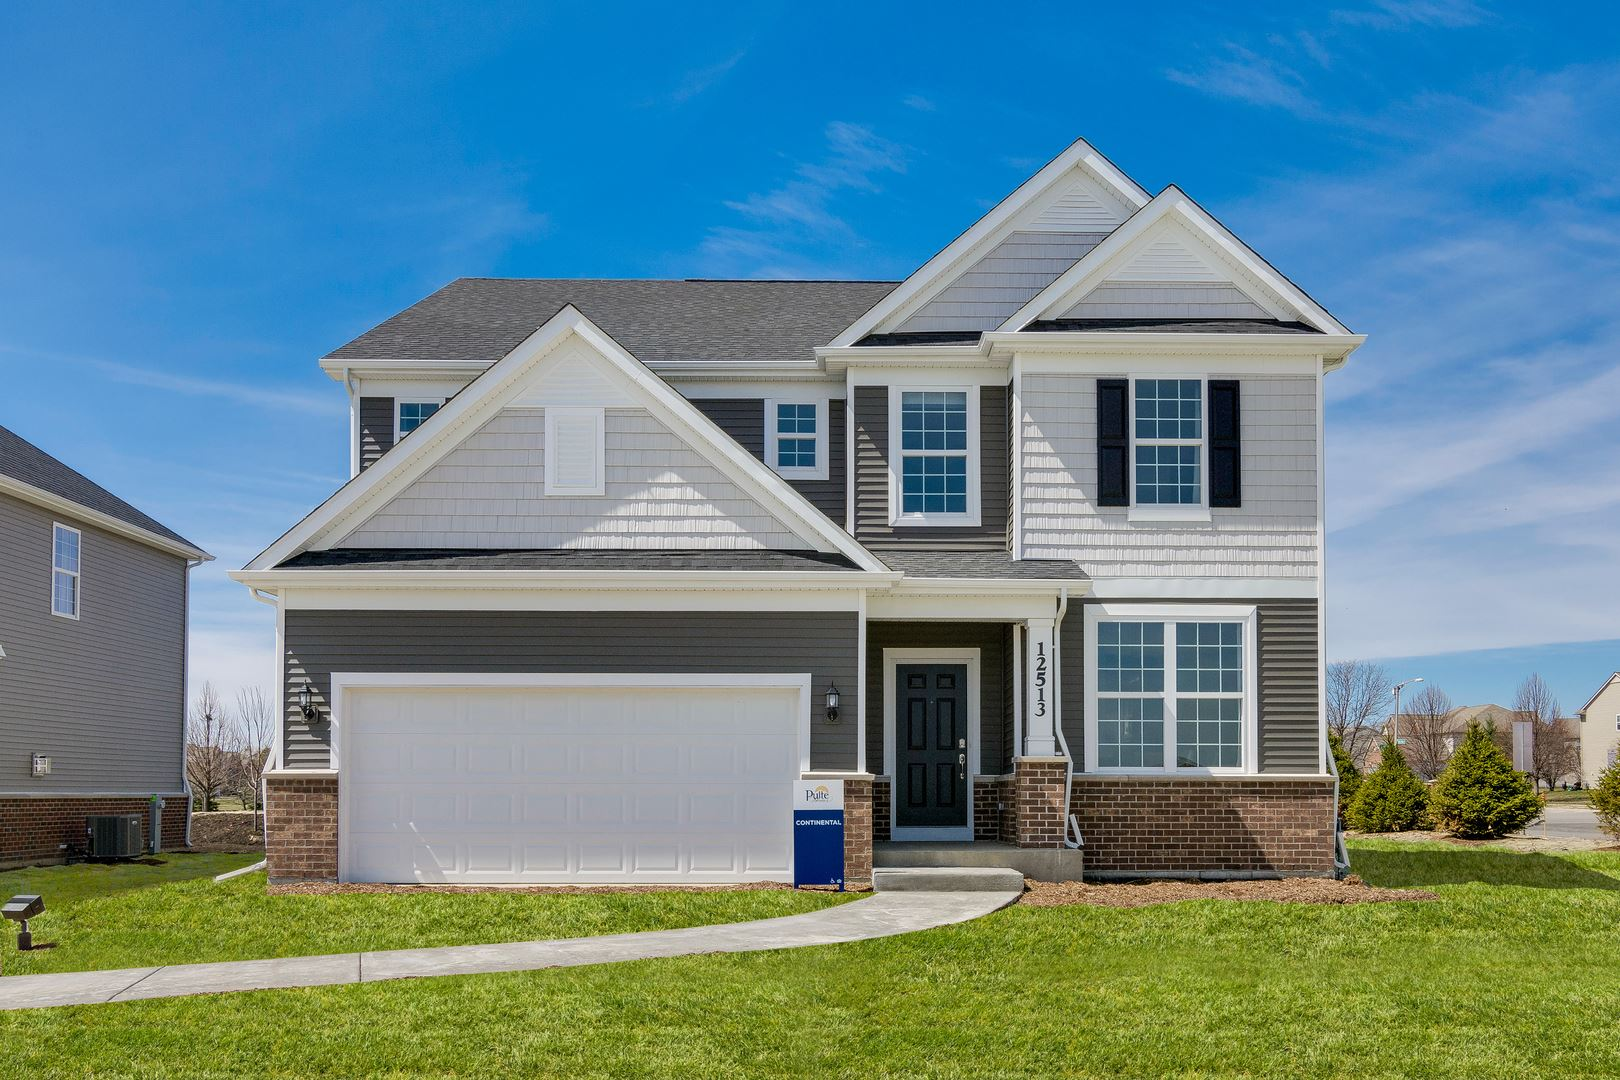 Photo of 24514 W Magnetic Way, Plainfield, IL 60585 (MLS # 11058531)